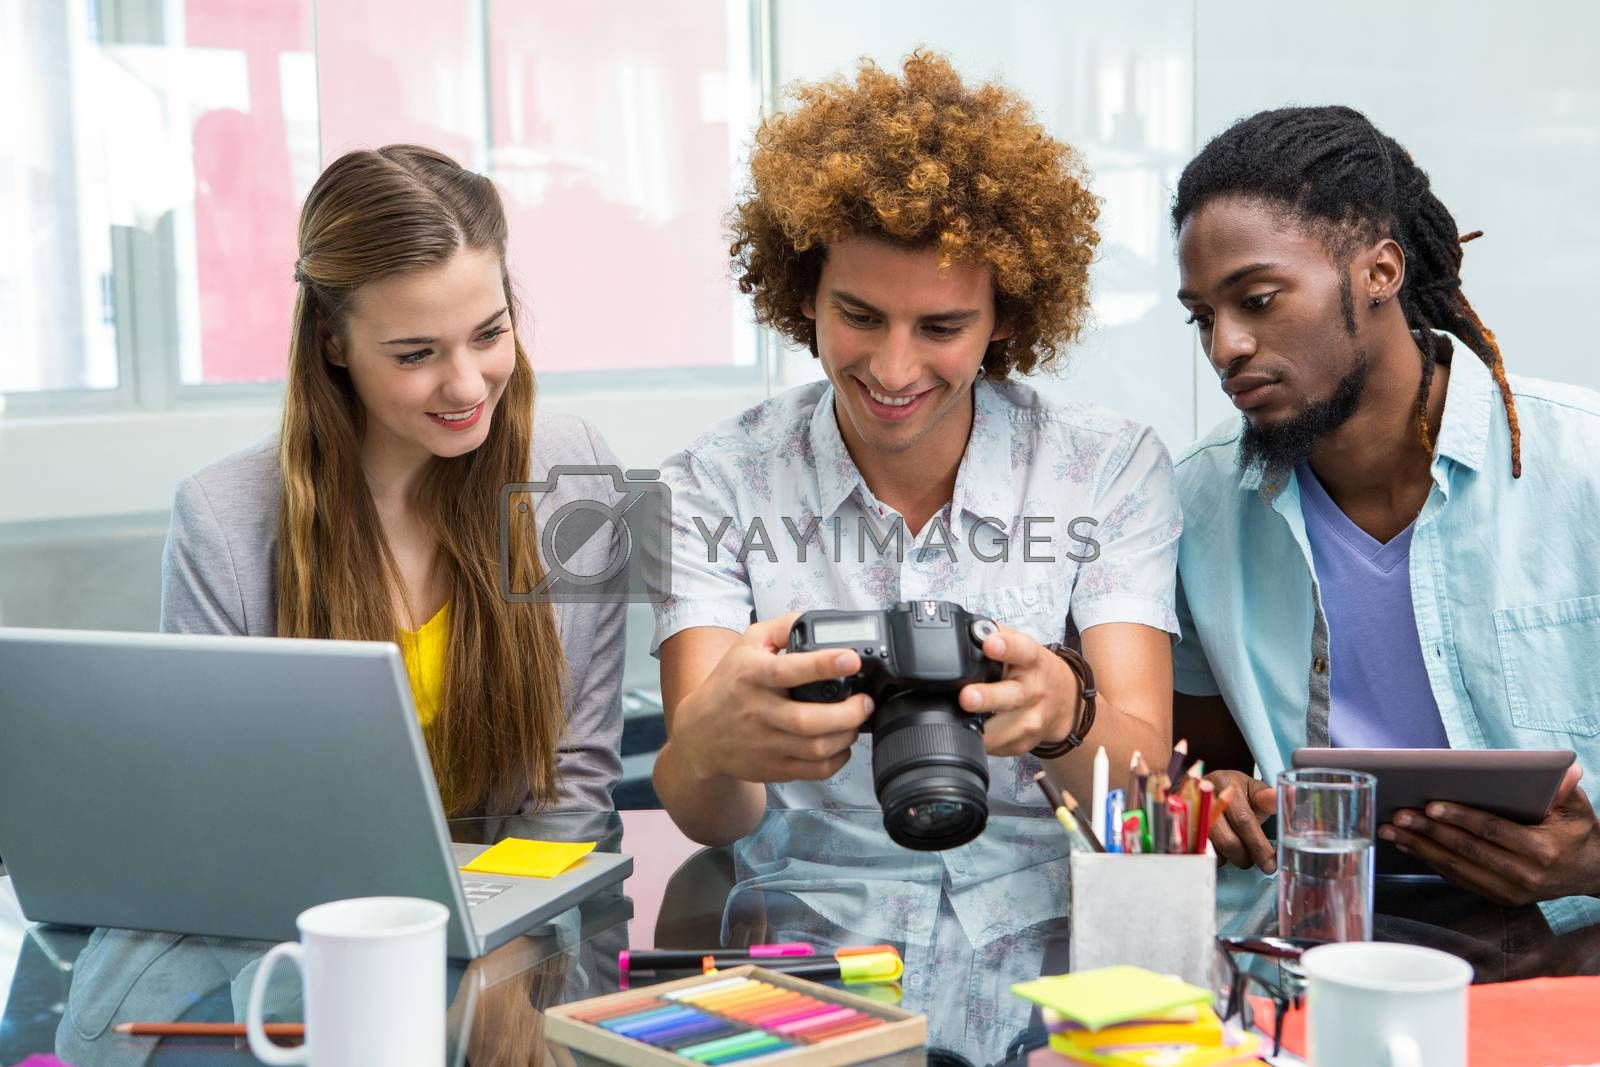 Creative young business people looking at digital camera at office desk